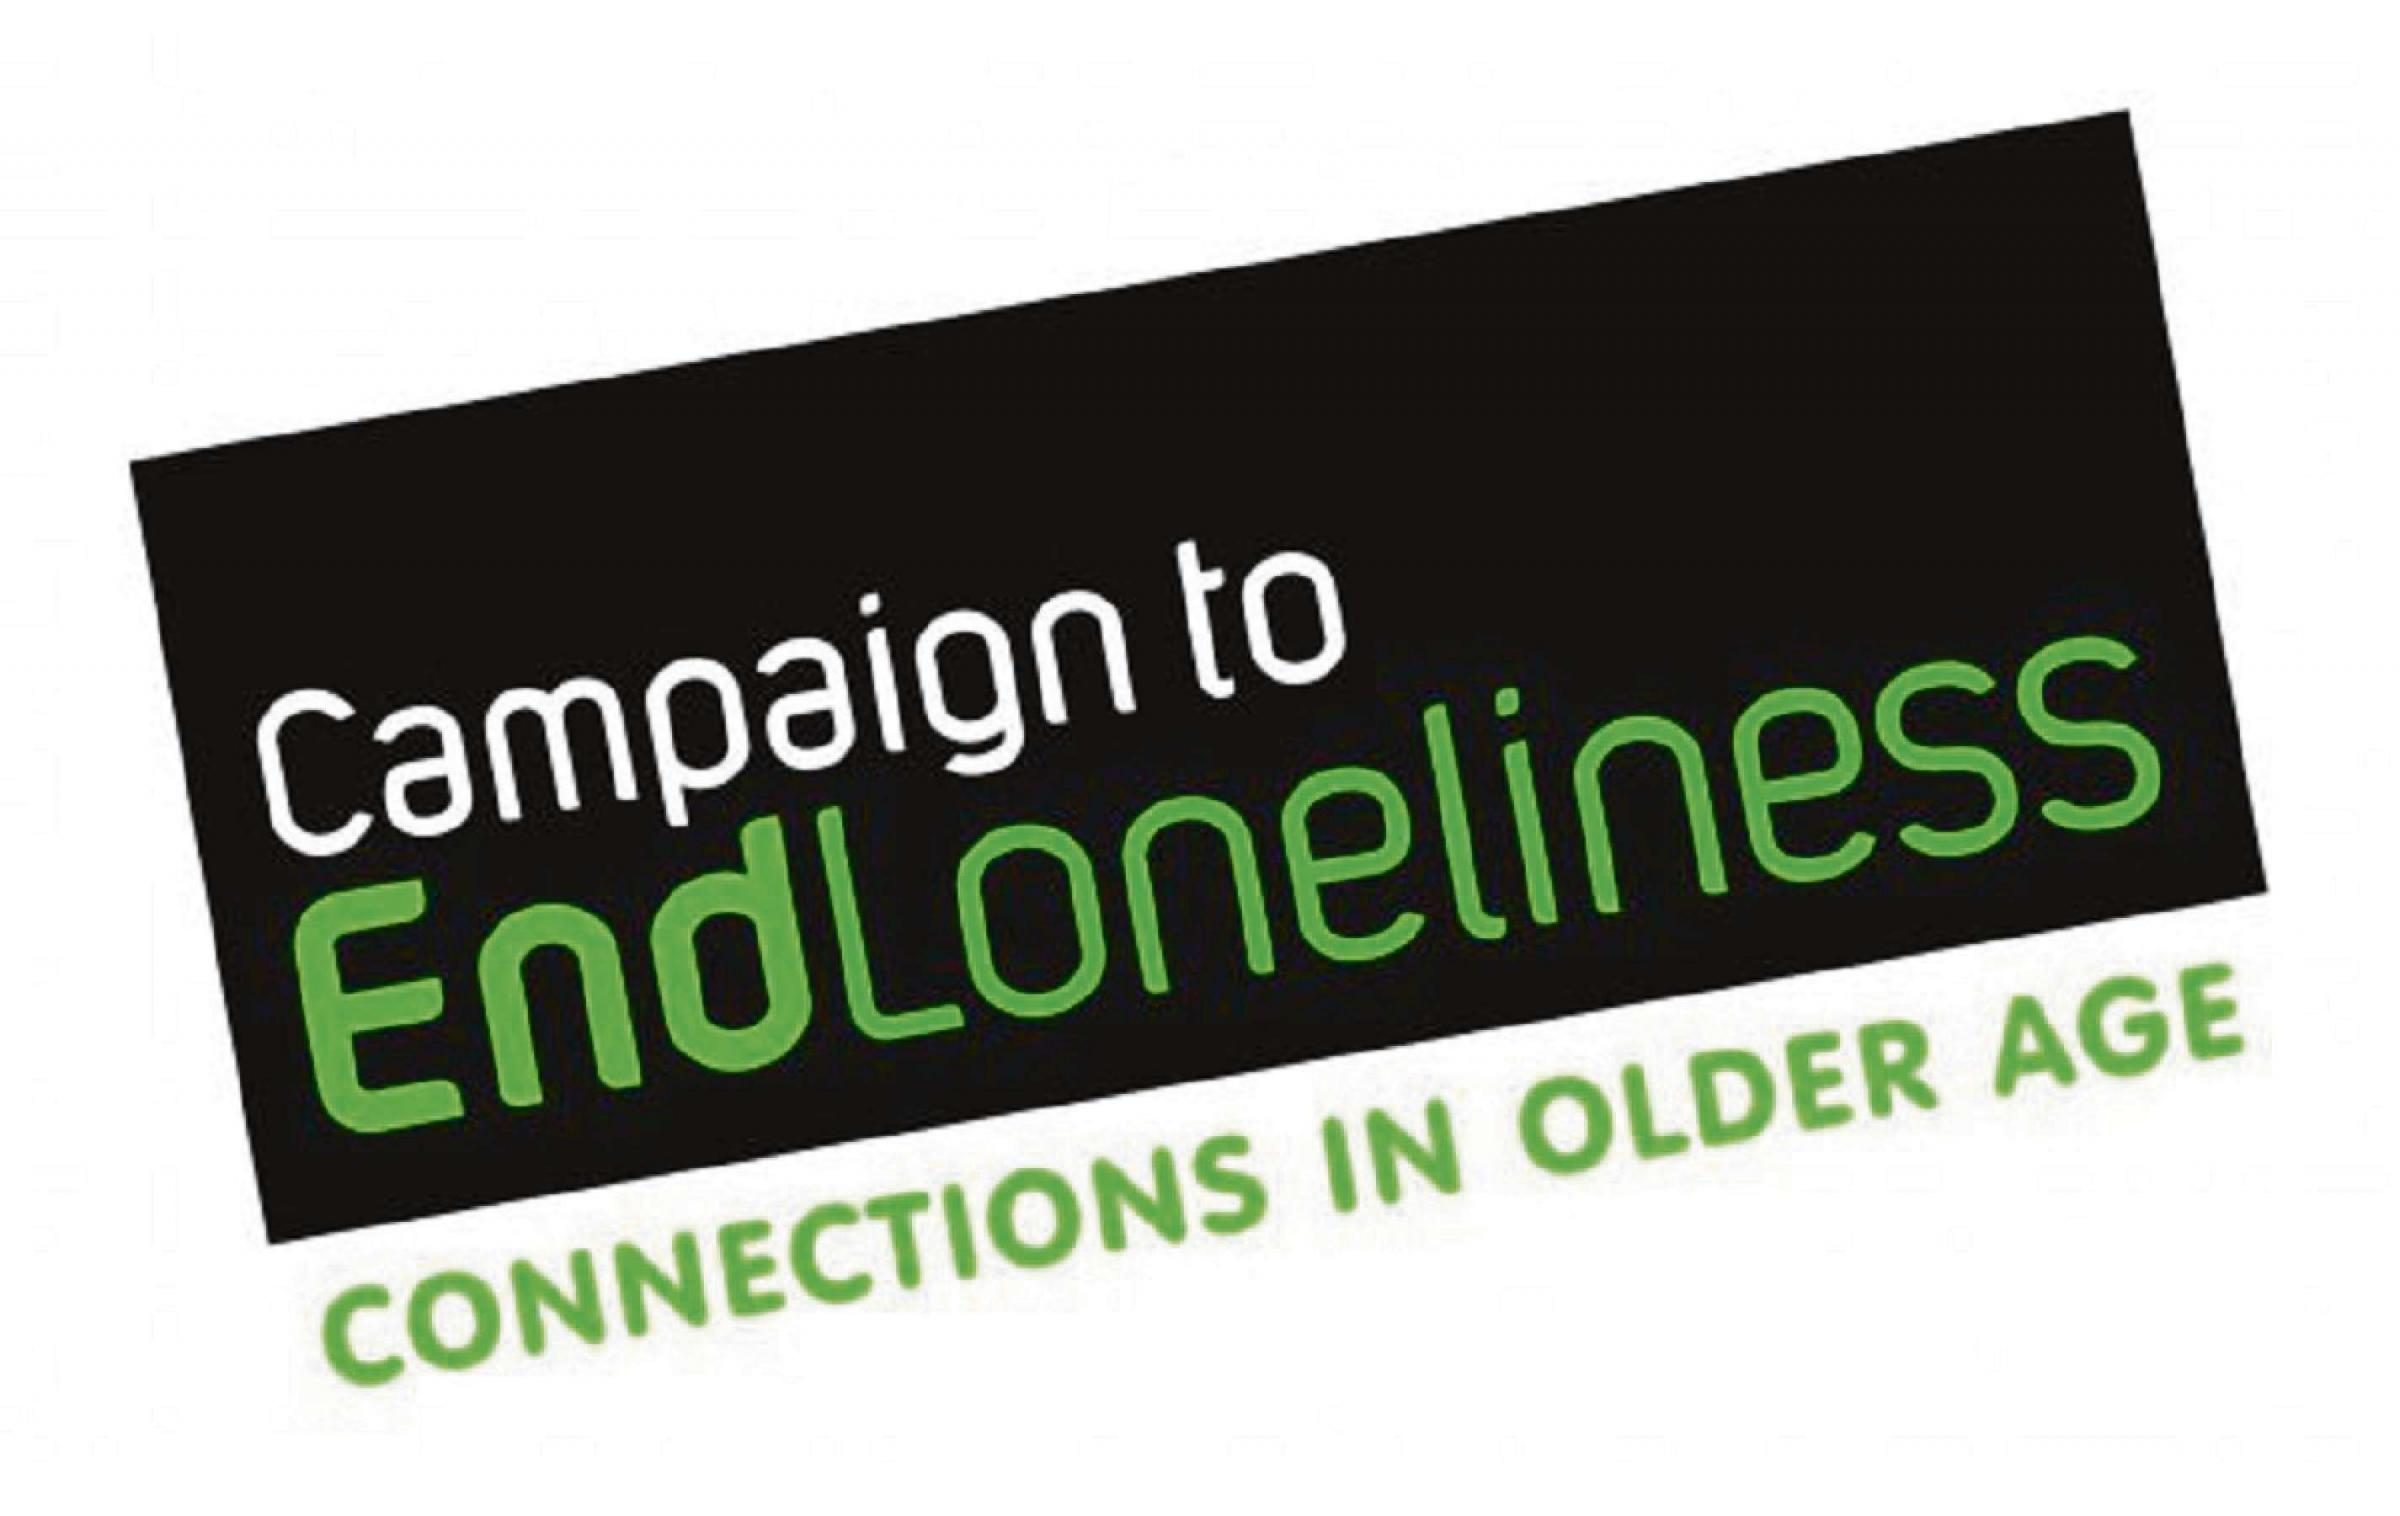 Cost of loneliness on older people revealed